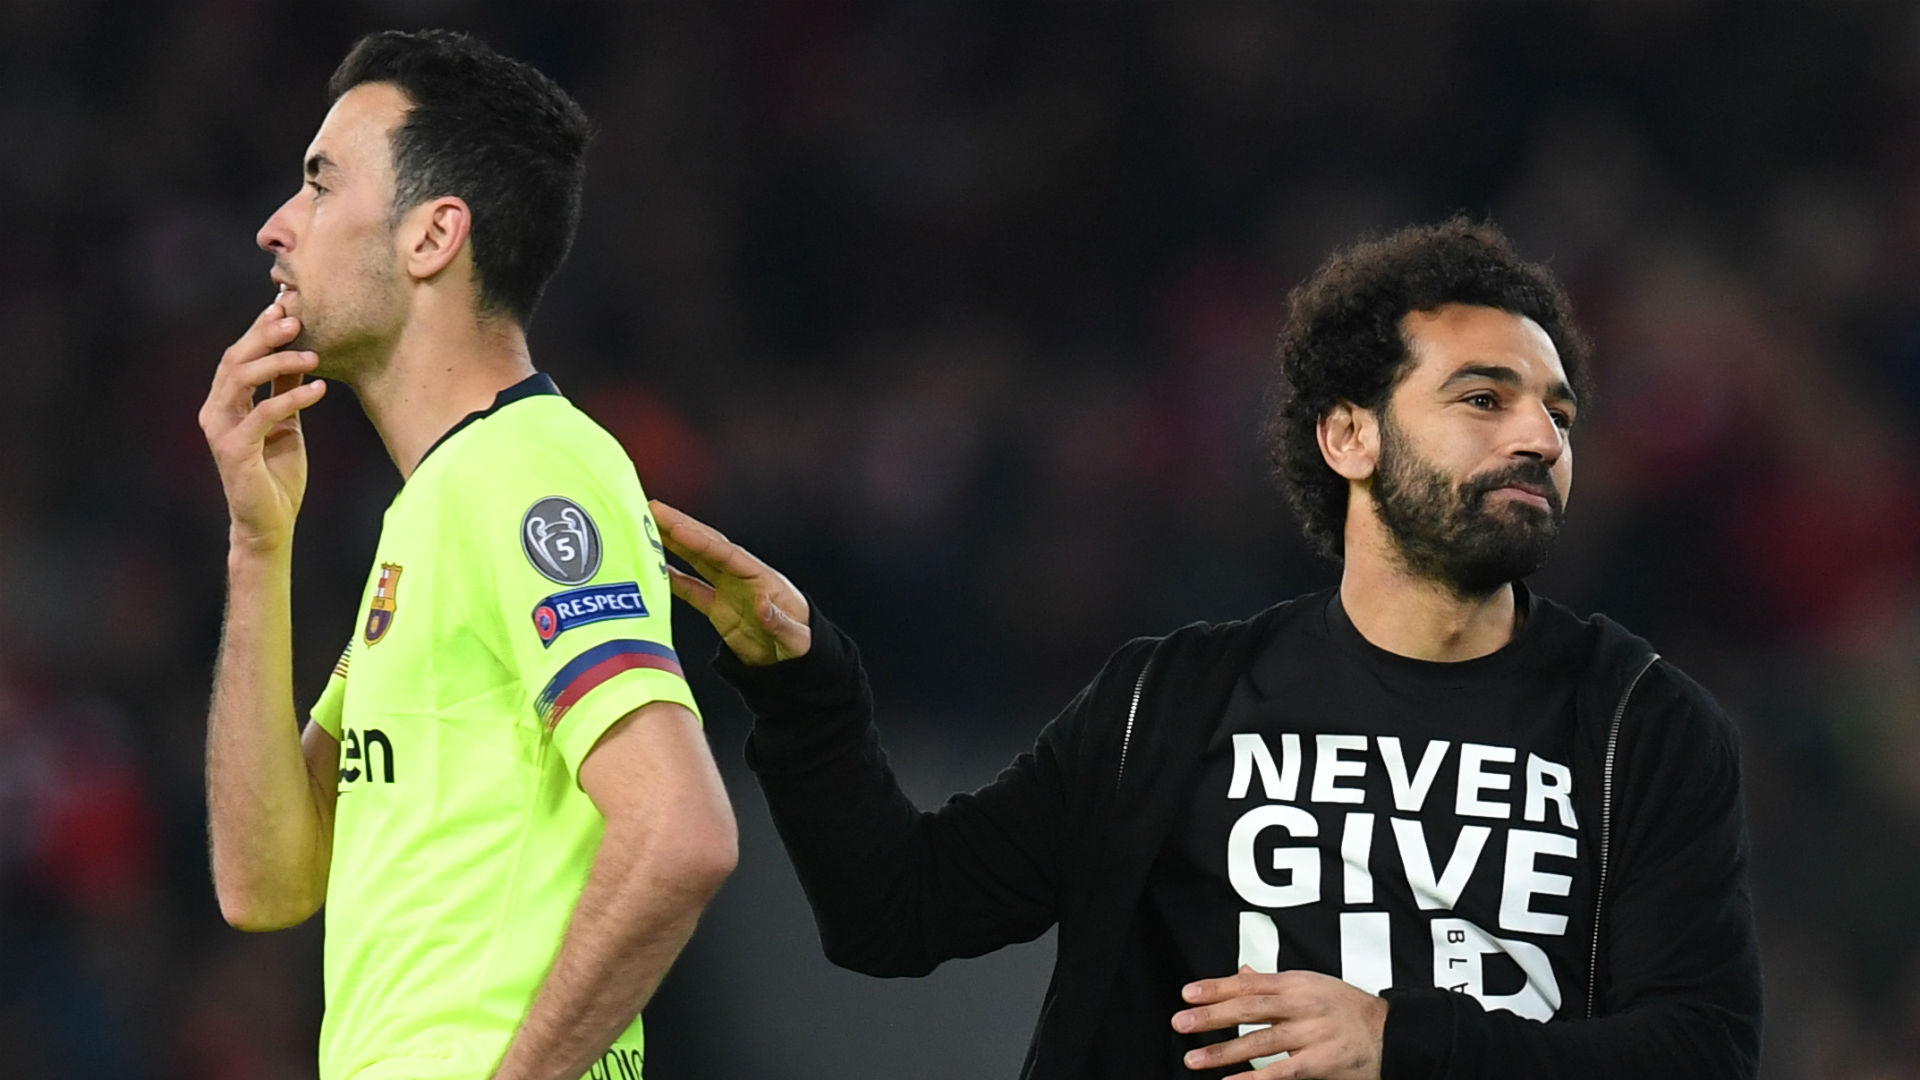 Liverpool Vs Barcelona: Suarez Comes Hard On Messi, Coutinho, Others